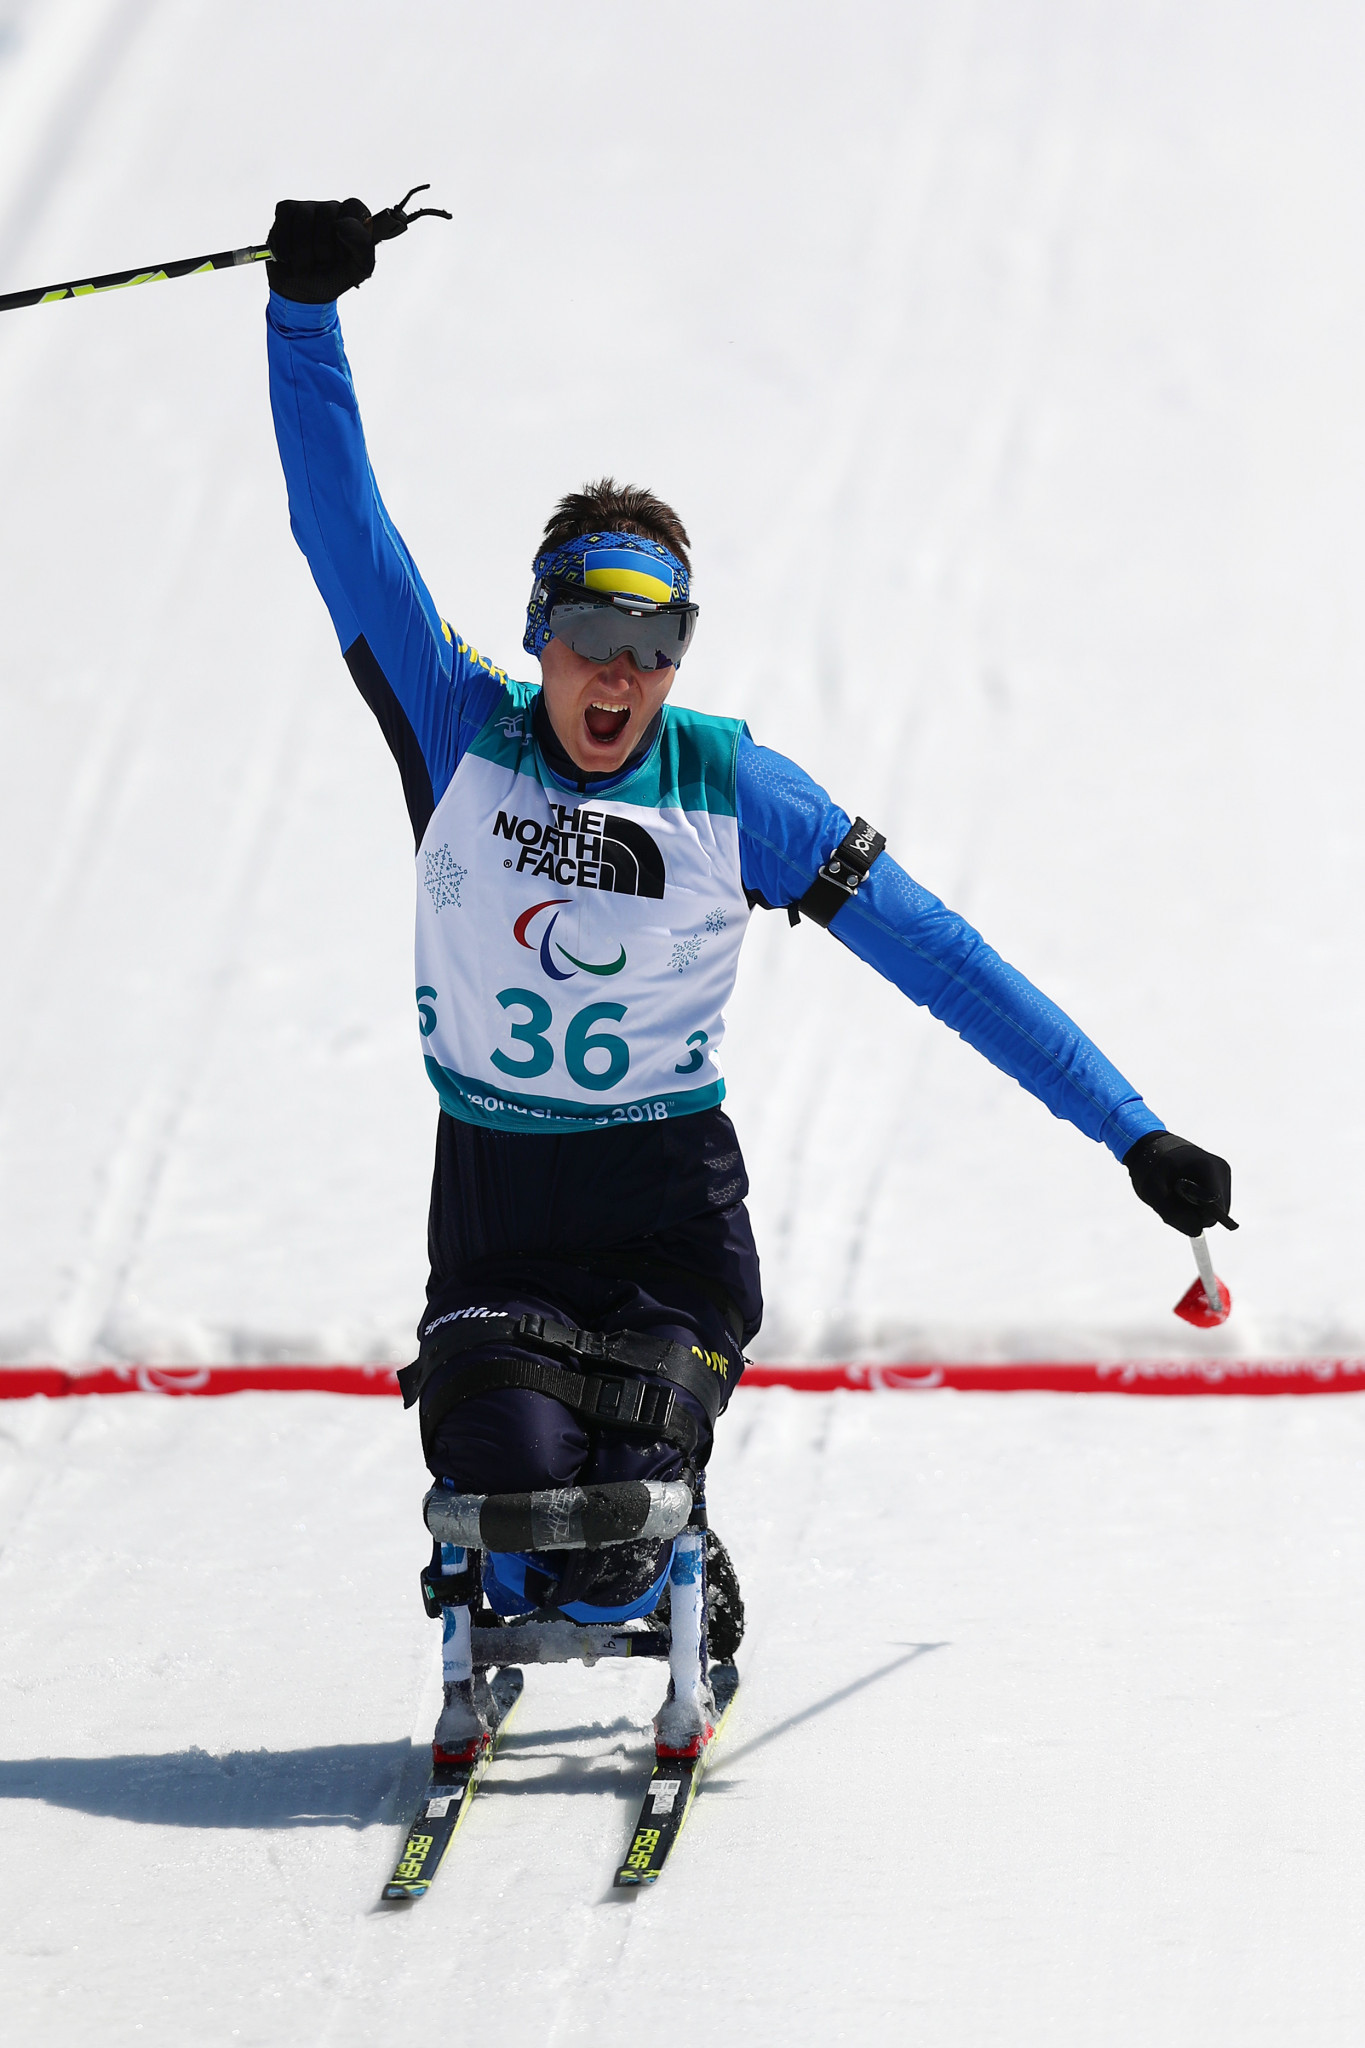 Rad is best of Paralympian rivals on day two at World Para Nordic Skiing World Cup Finals in Sapporo